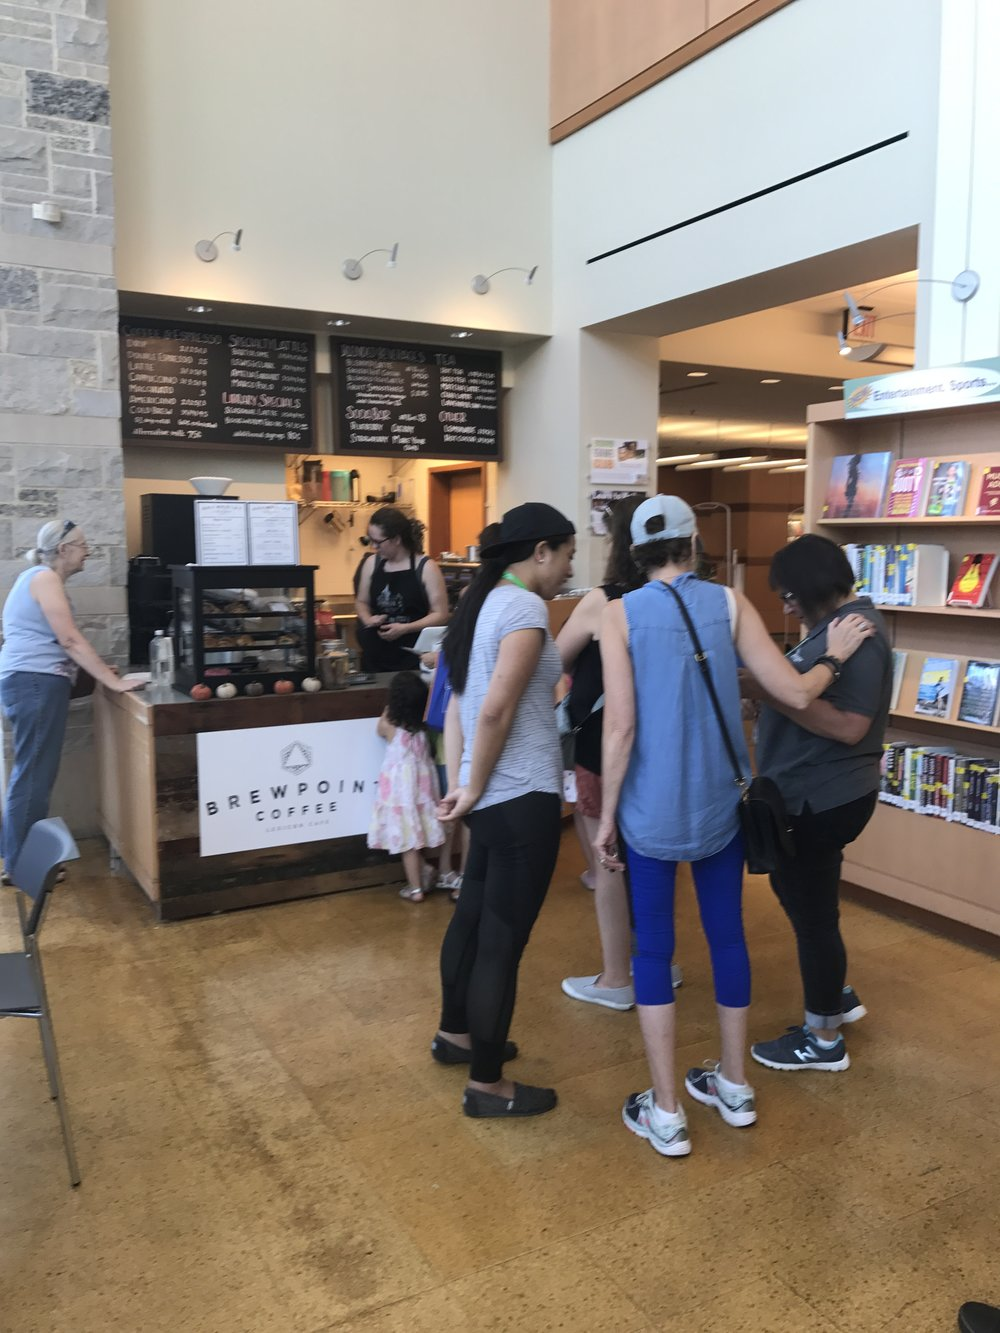 Patrons line up to get their morning coffee on Saturday, Sept. 23 at Brewpoint's new location inside the Elmhurst Public Library.  Photo by Estrella Vargas